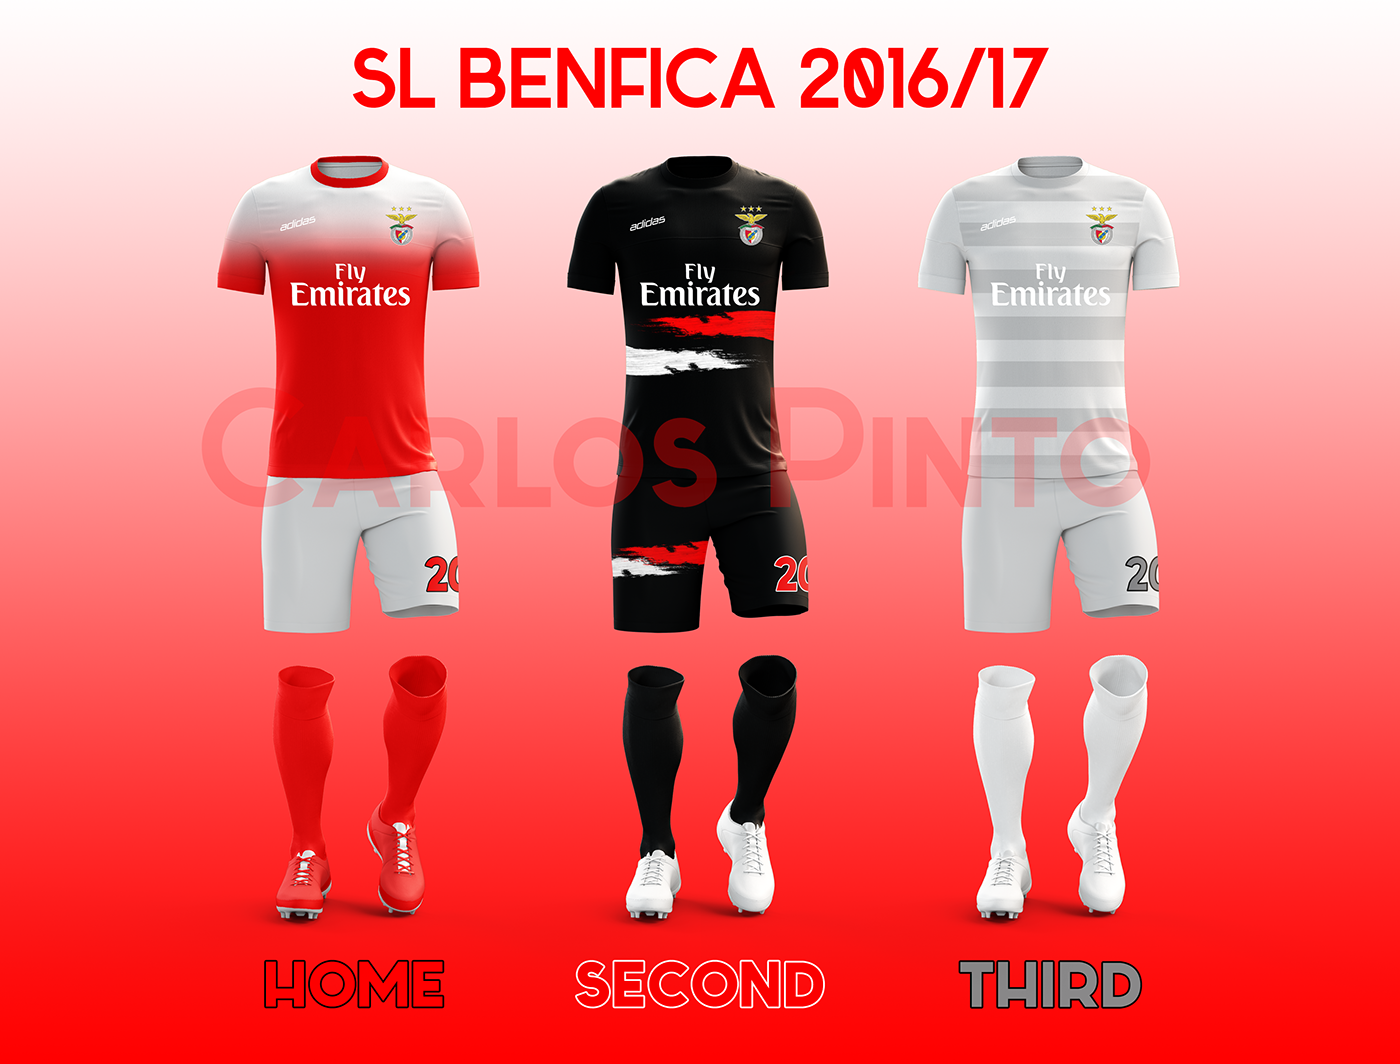 online retailer 91aba 68706 SL BENFICA 2016/17 Football Kits on Behance